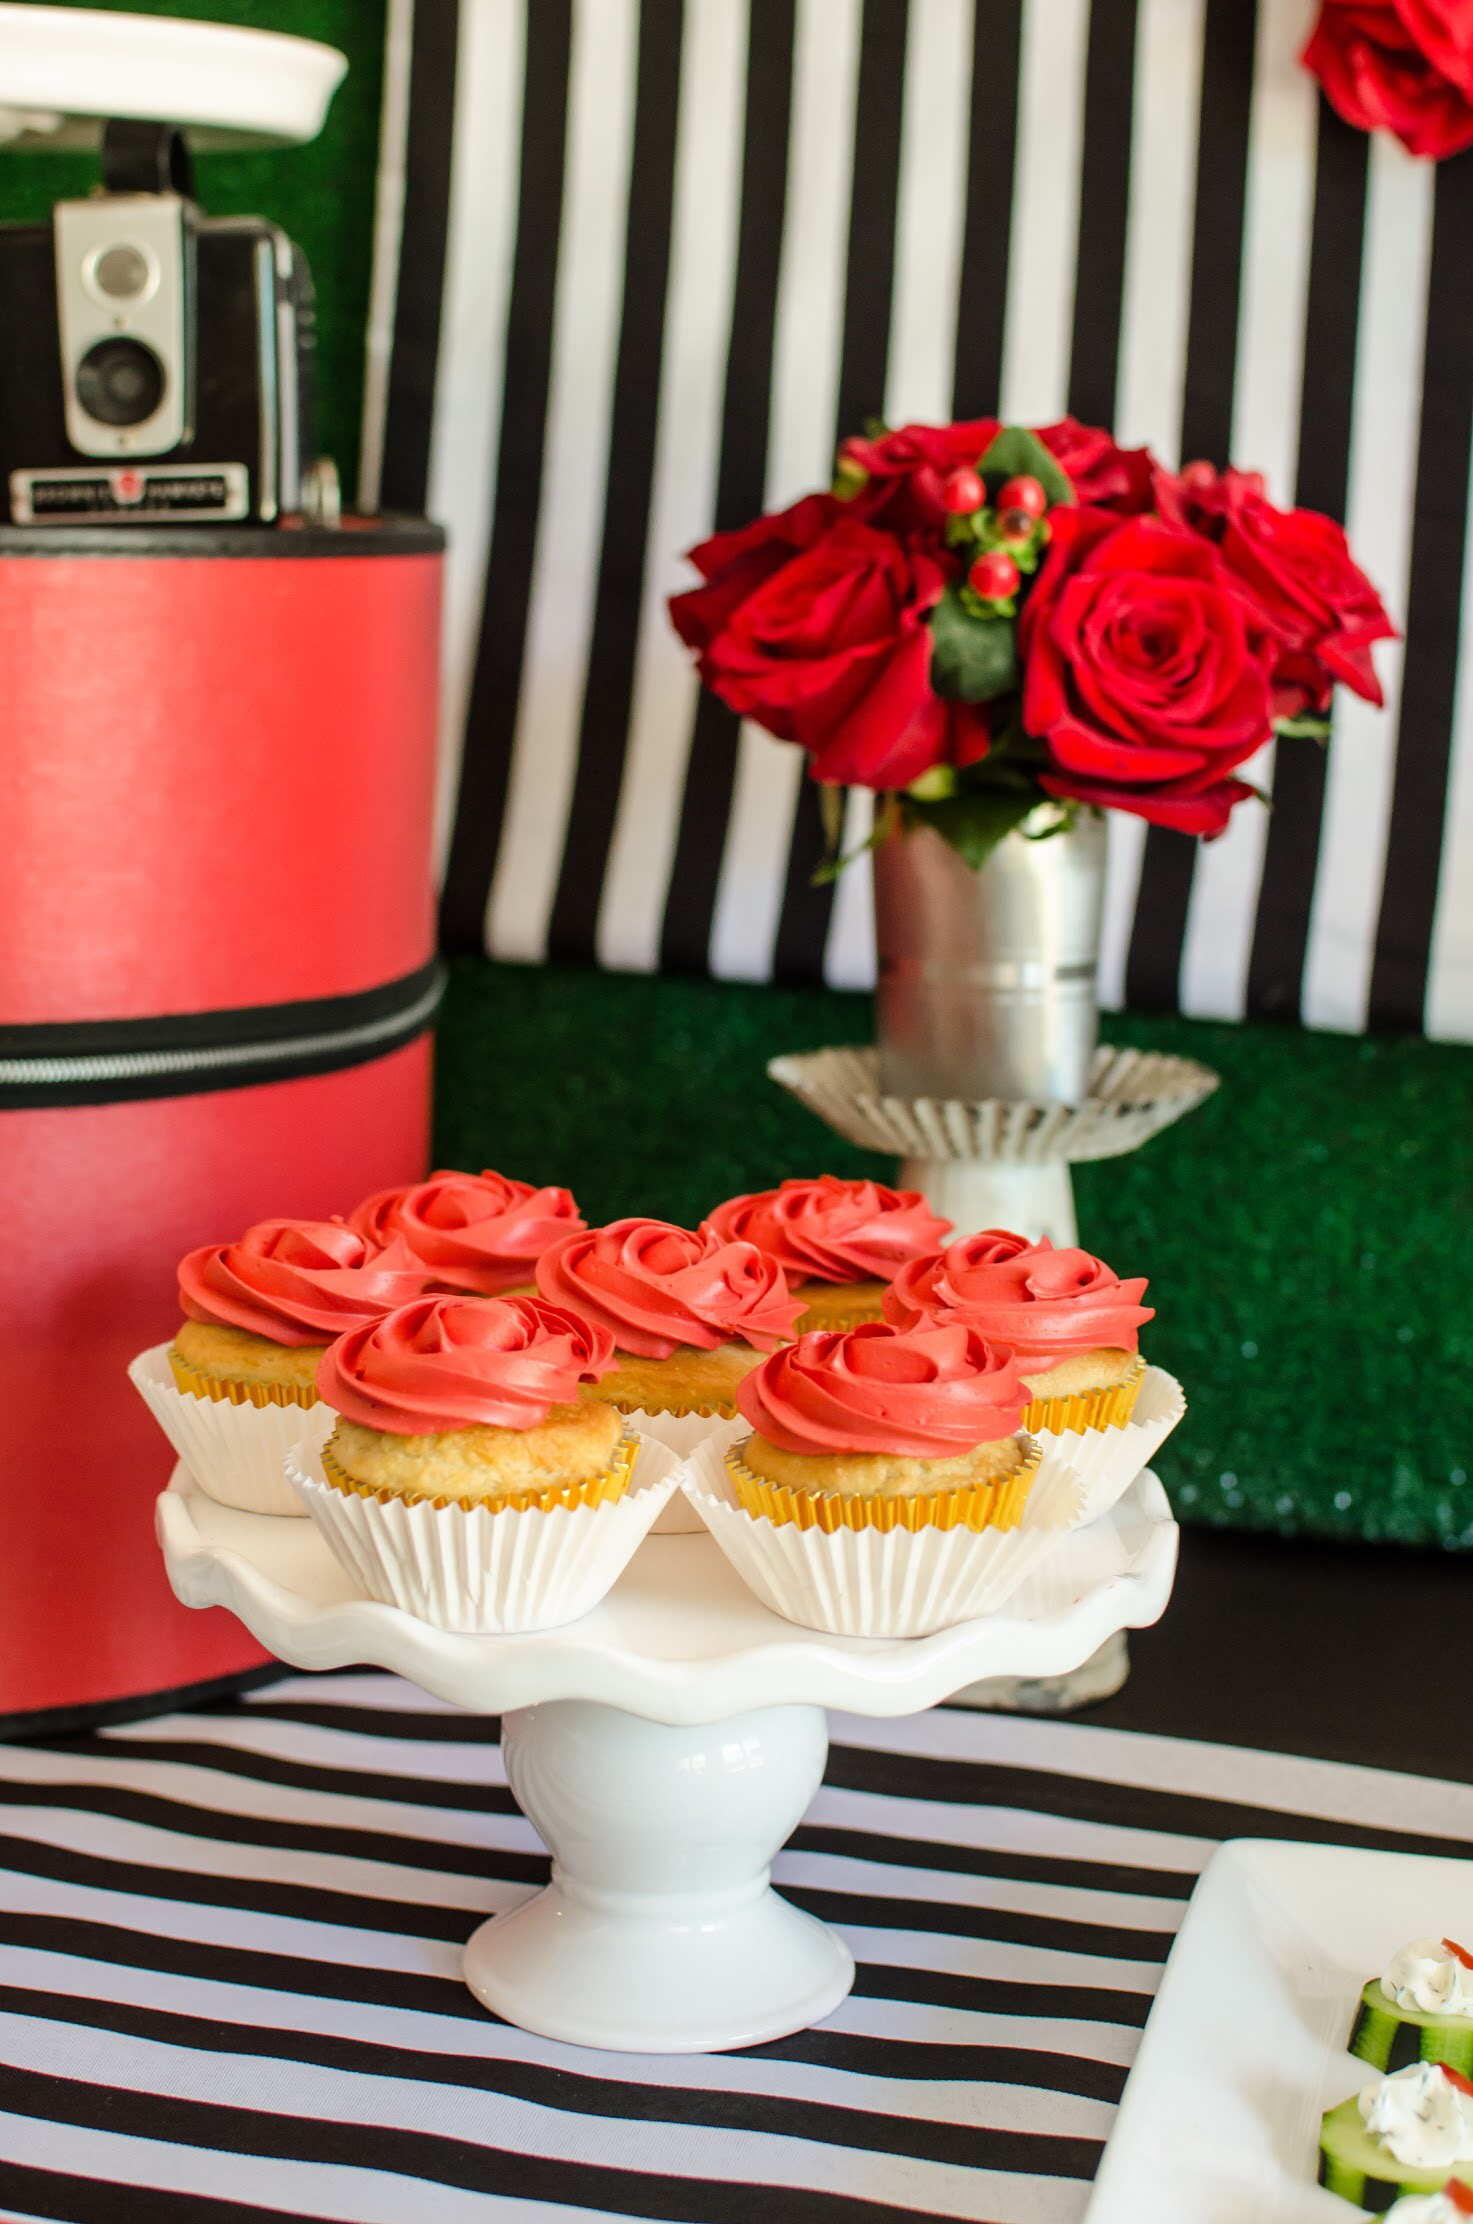 Red Party Ideas for a Kentucky Derby Party include cupcakes frosted to resemble red roses. From Mint Event Design www.minteventdesign.com